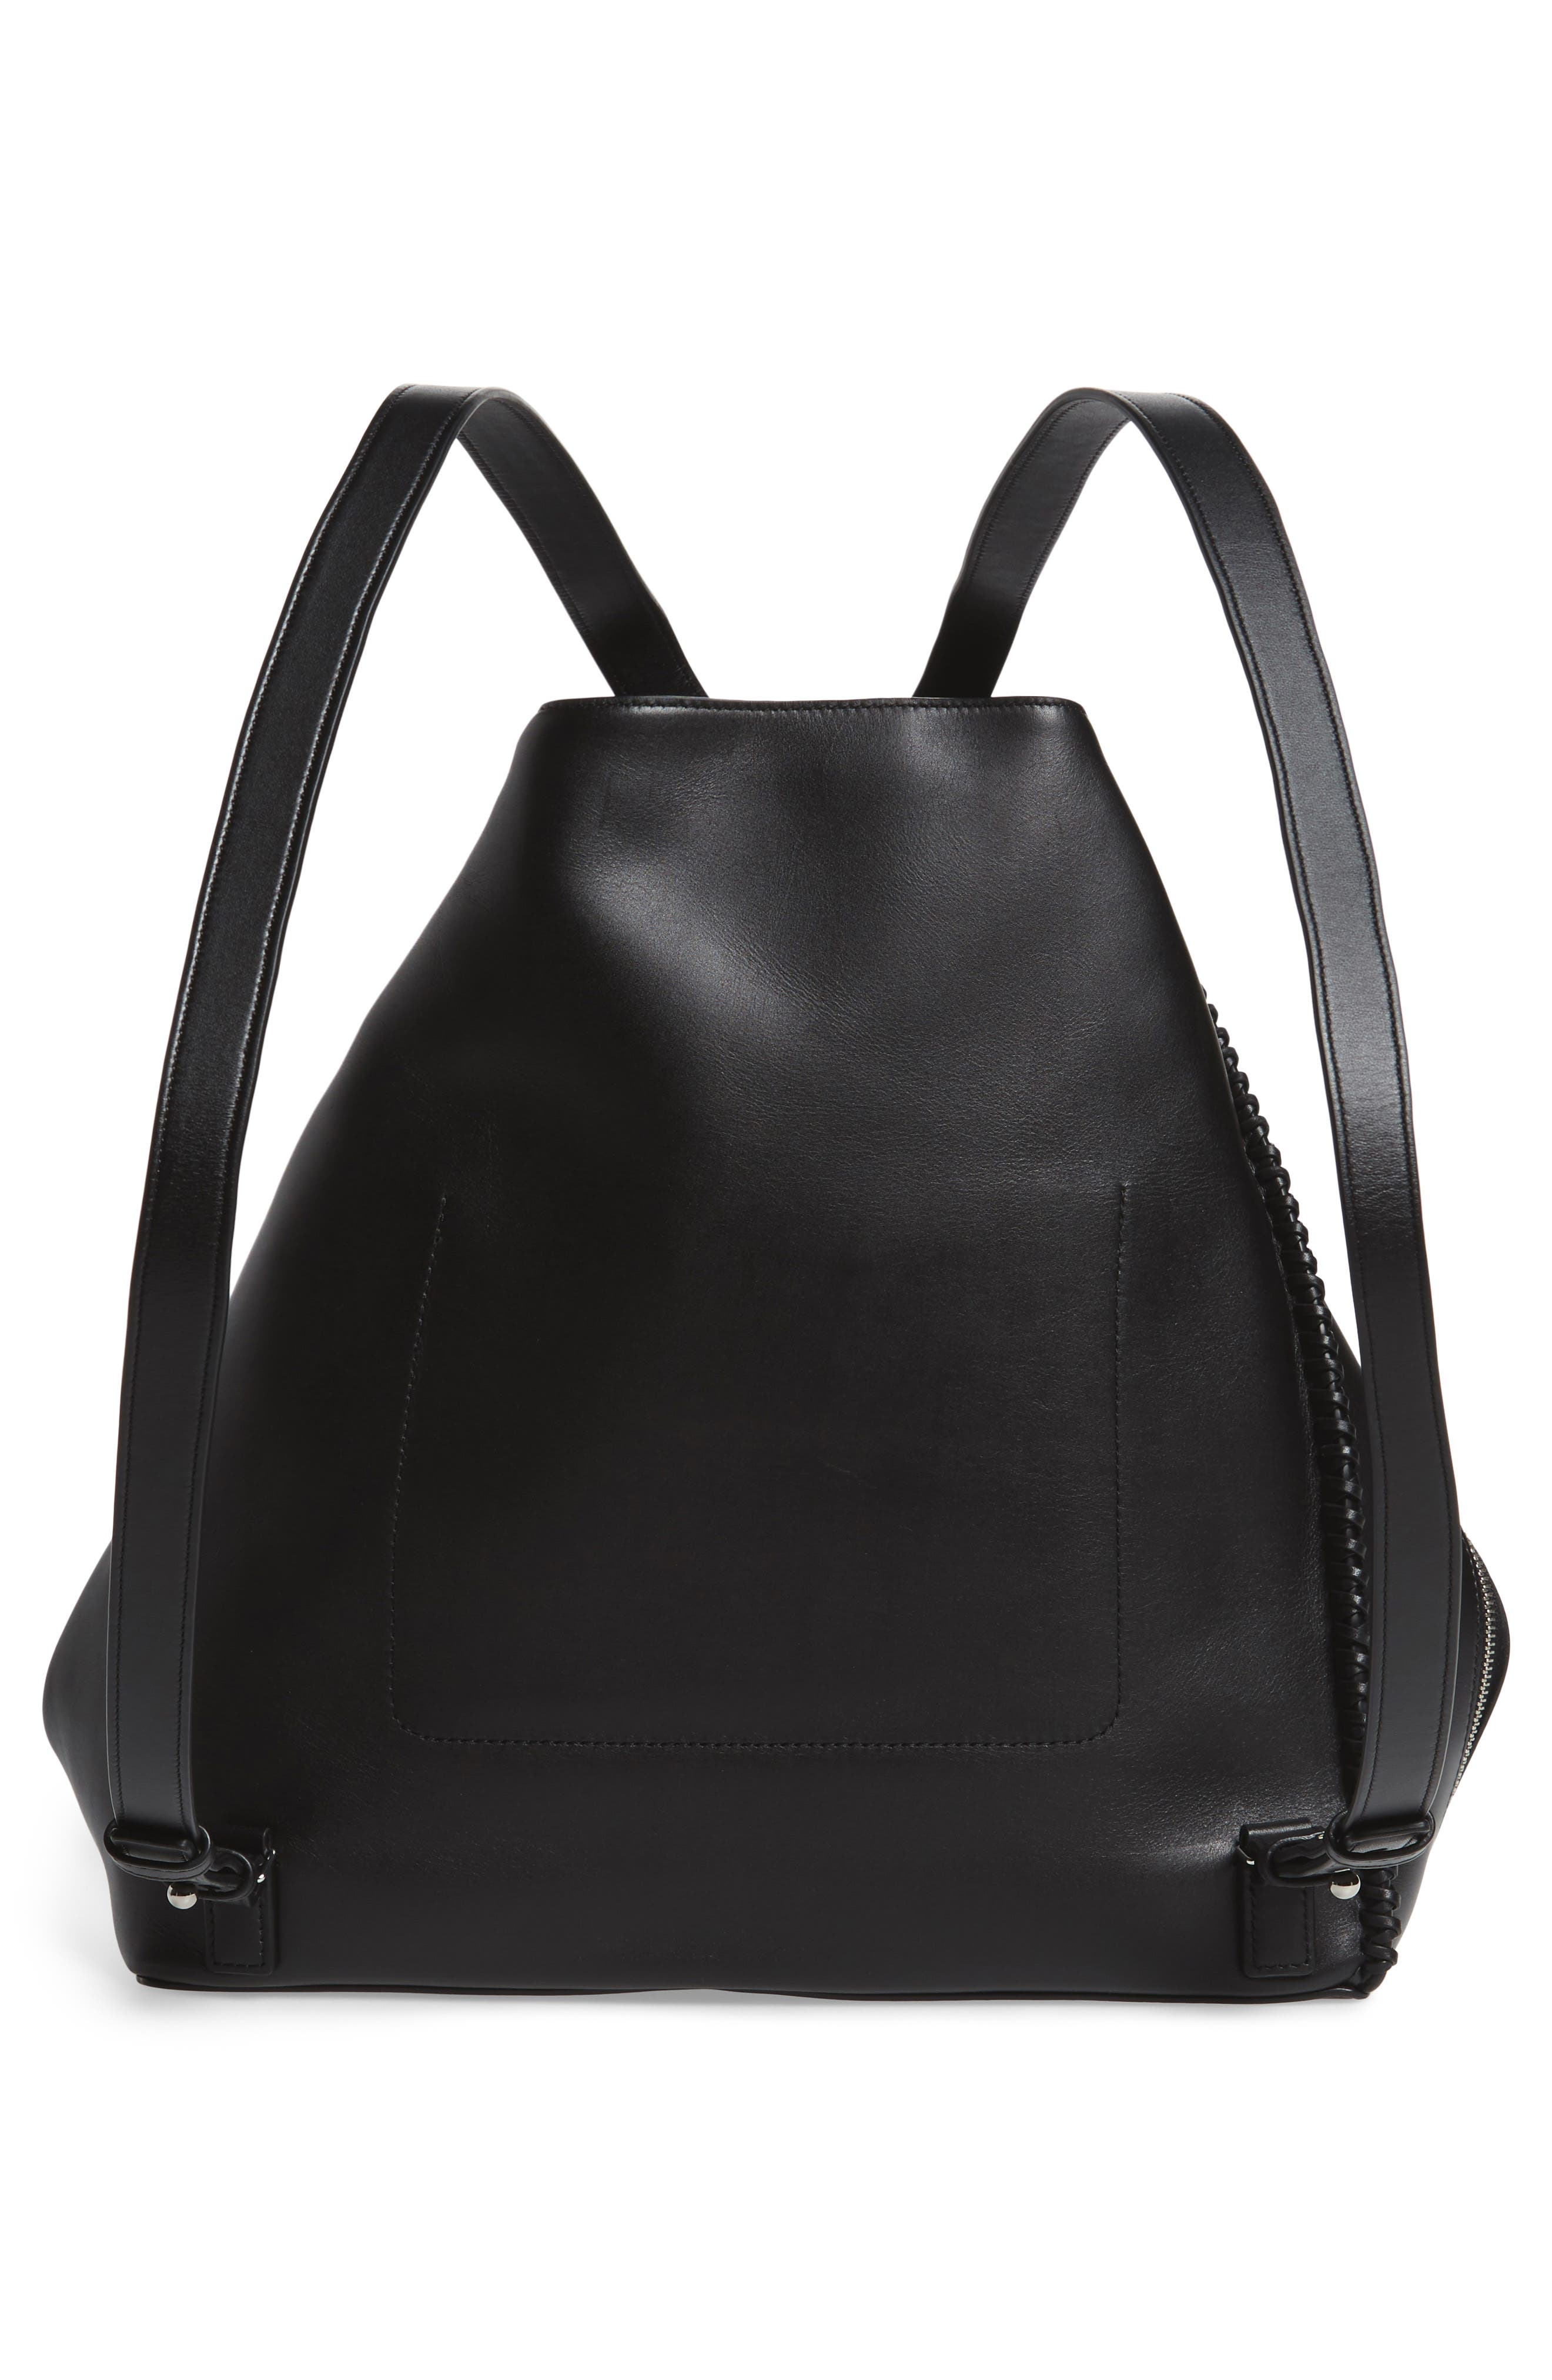 Pearl Convertible Leather Backpack,                             Alternate thumbnail 3, color,                             001